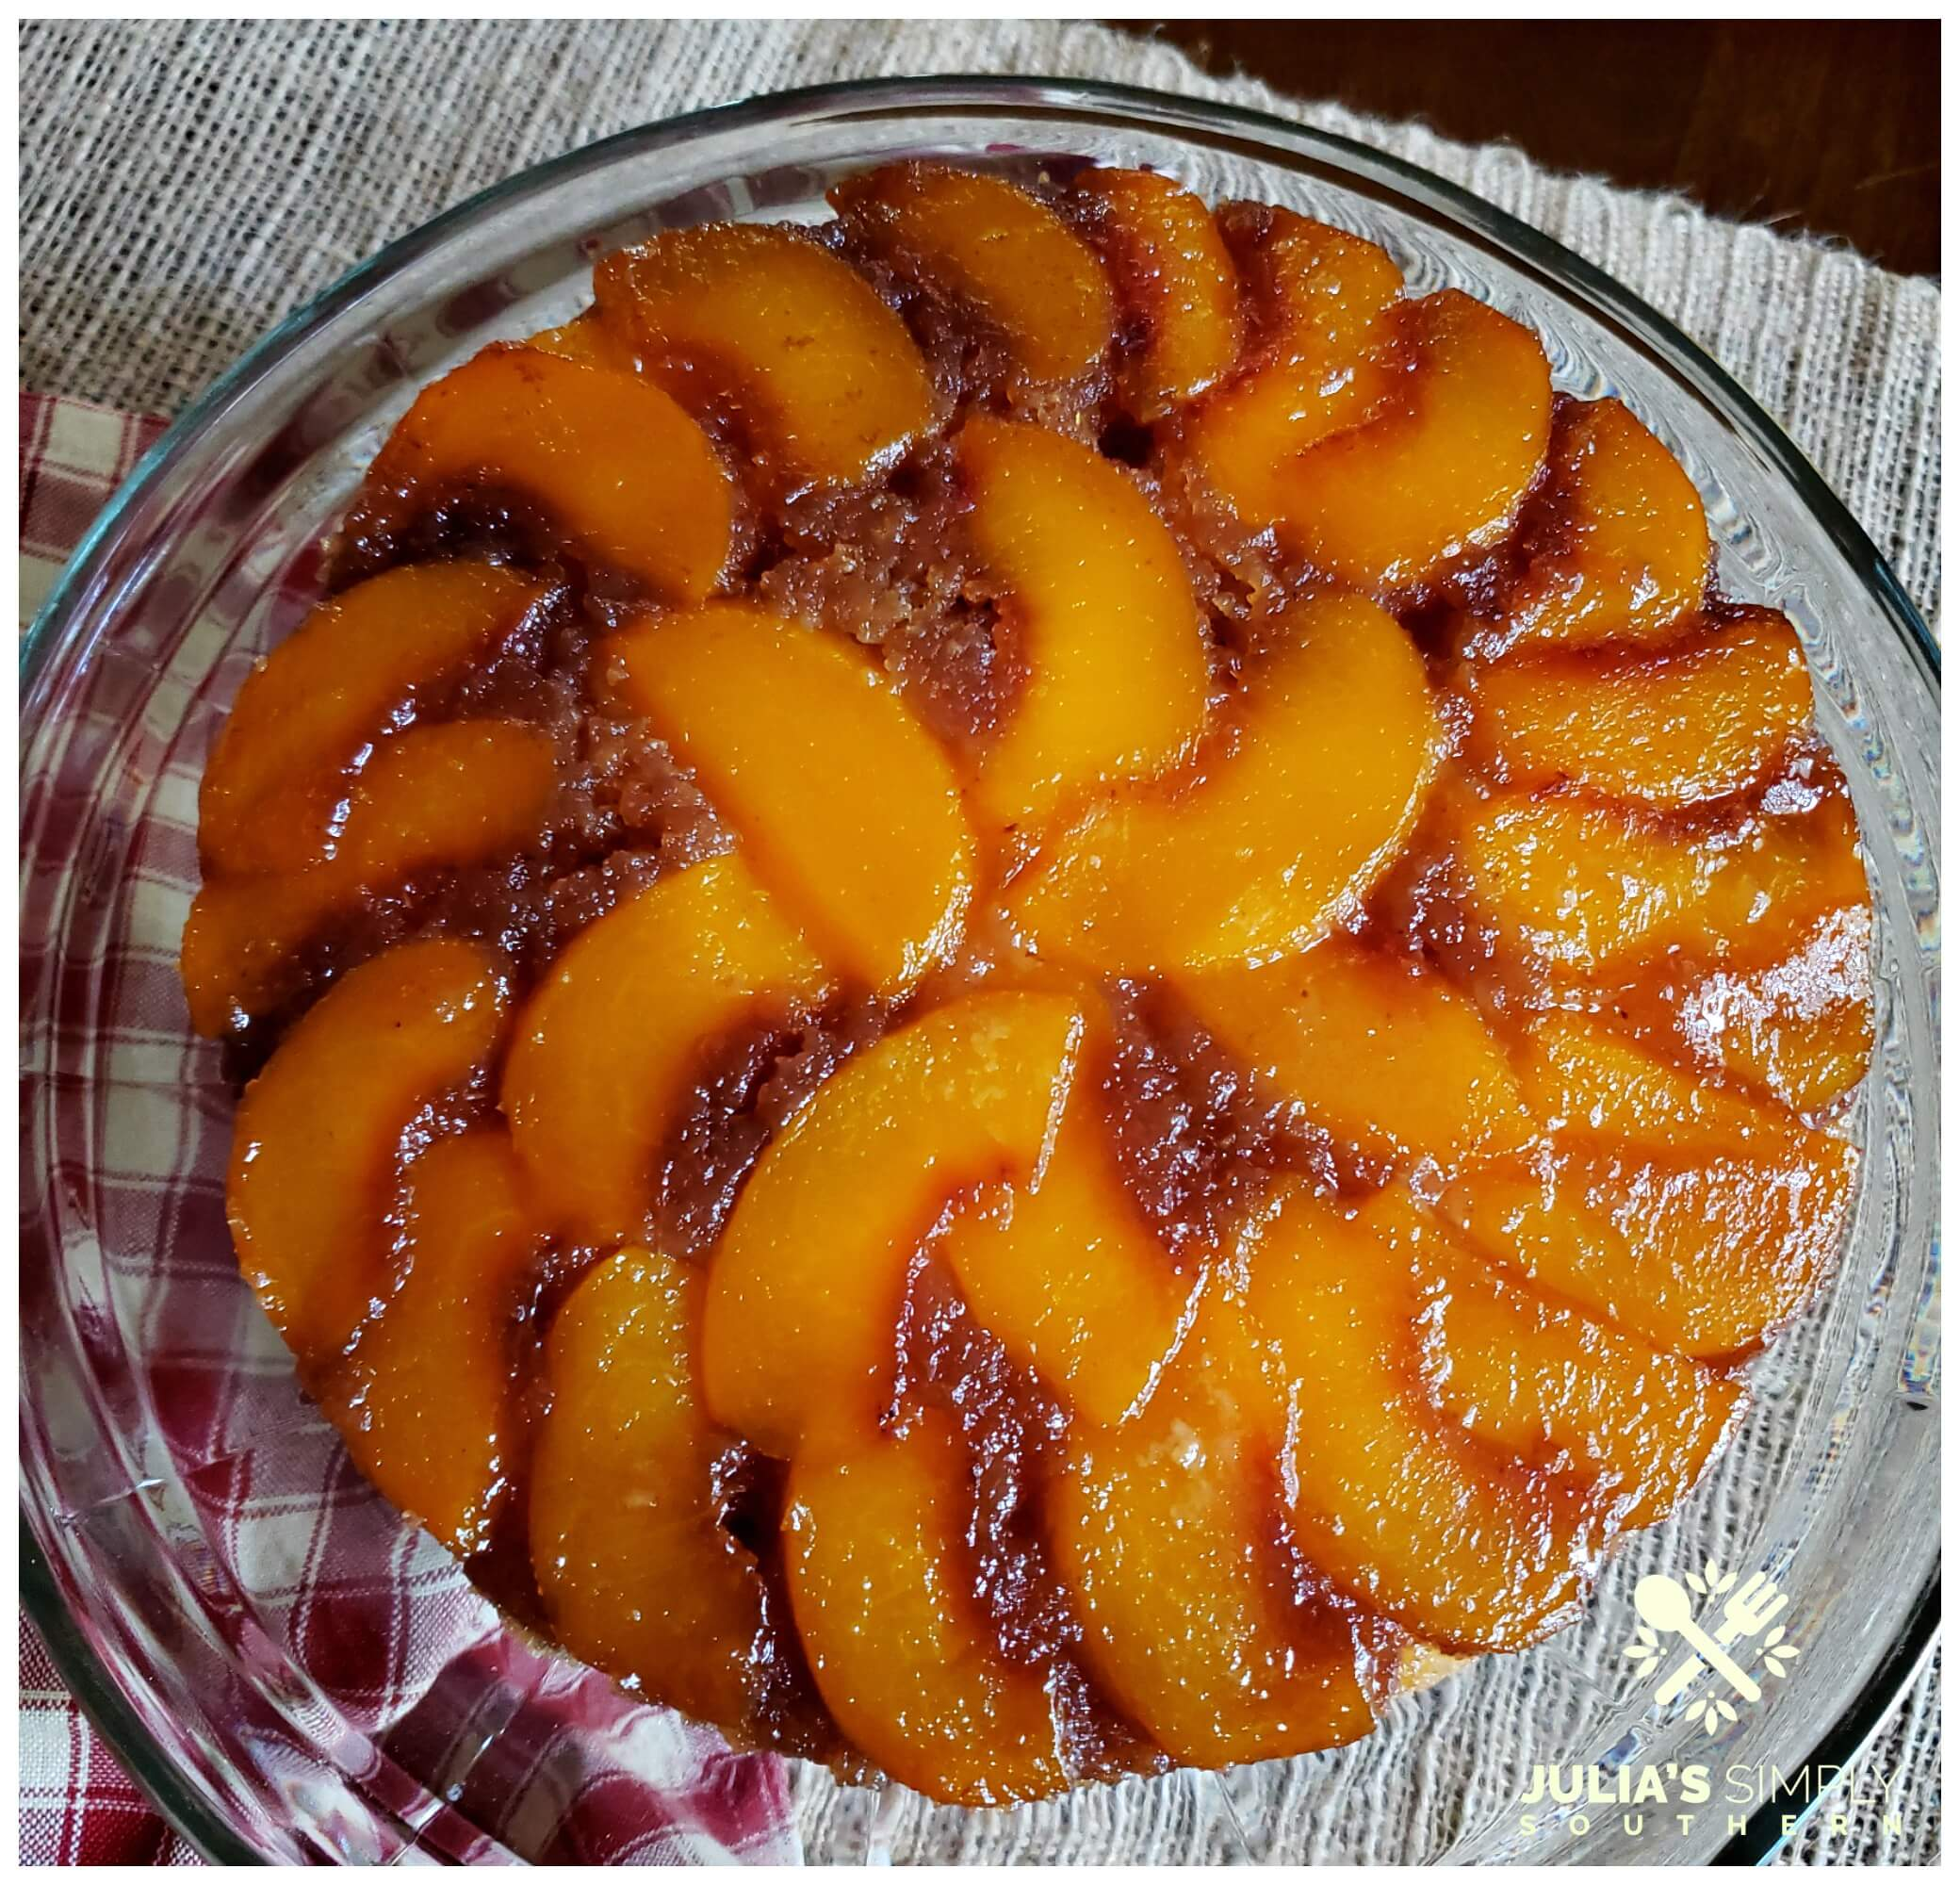 Beautiful caramel peach upside down cake with freestone Pretty Lady Peaches on a glass plate and country check napkin